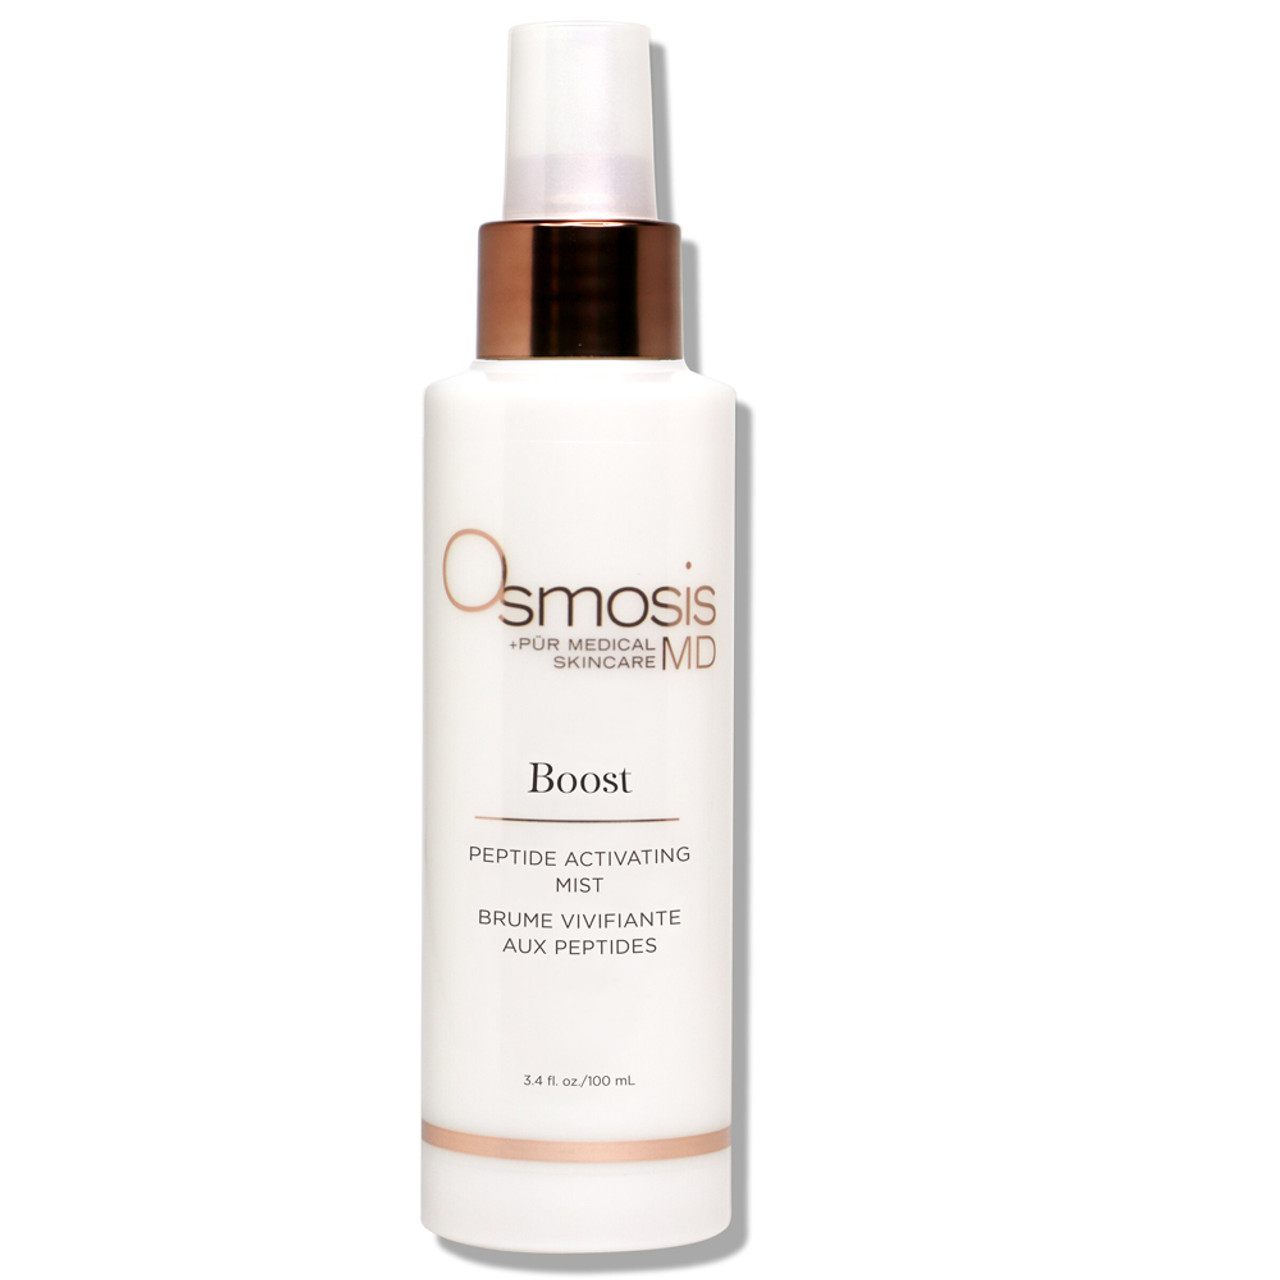 Osmosis +Skincare MD Boost - Peptide Activating Mist BeautifiedYou.com